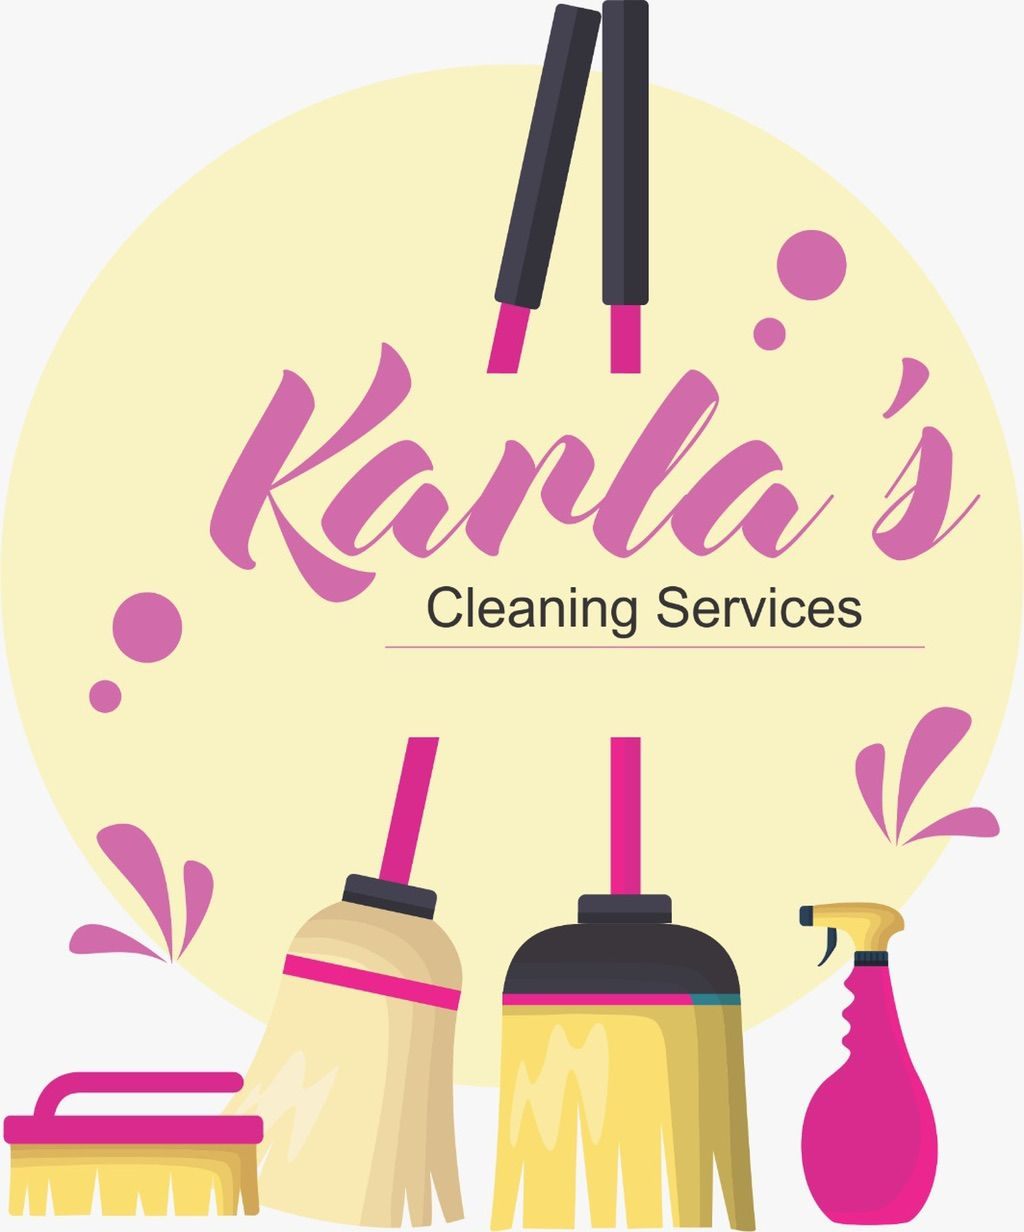 Karla's Cleaning Service LLC